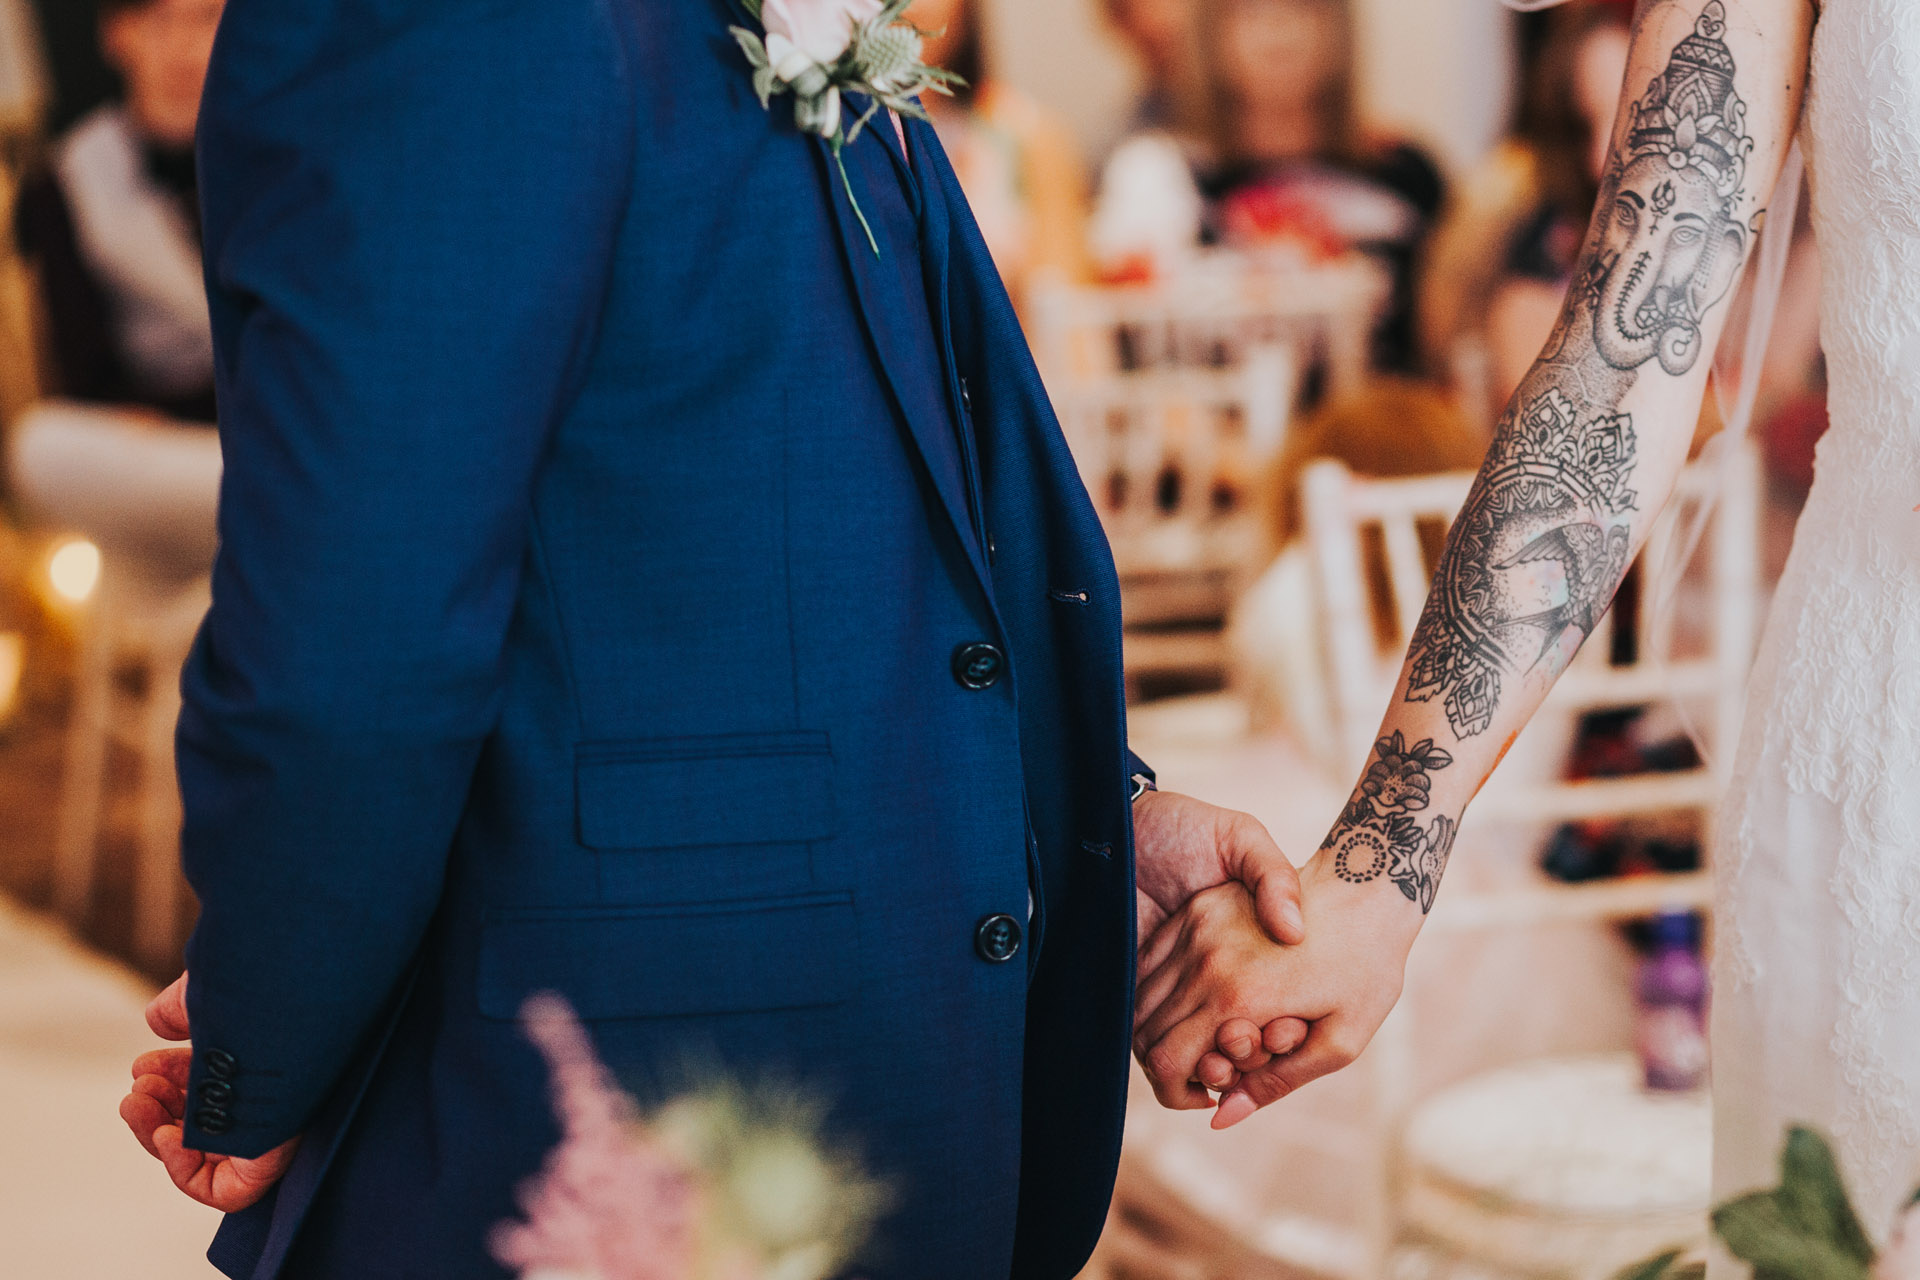 Brides beautiful tattooed arm stretches out to hold grooms hand. Close up photograph.